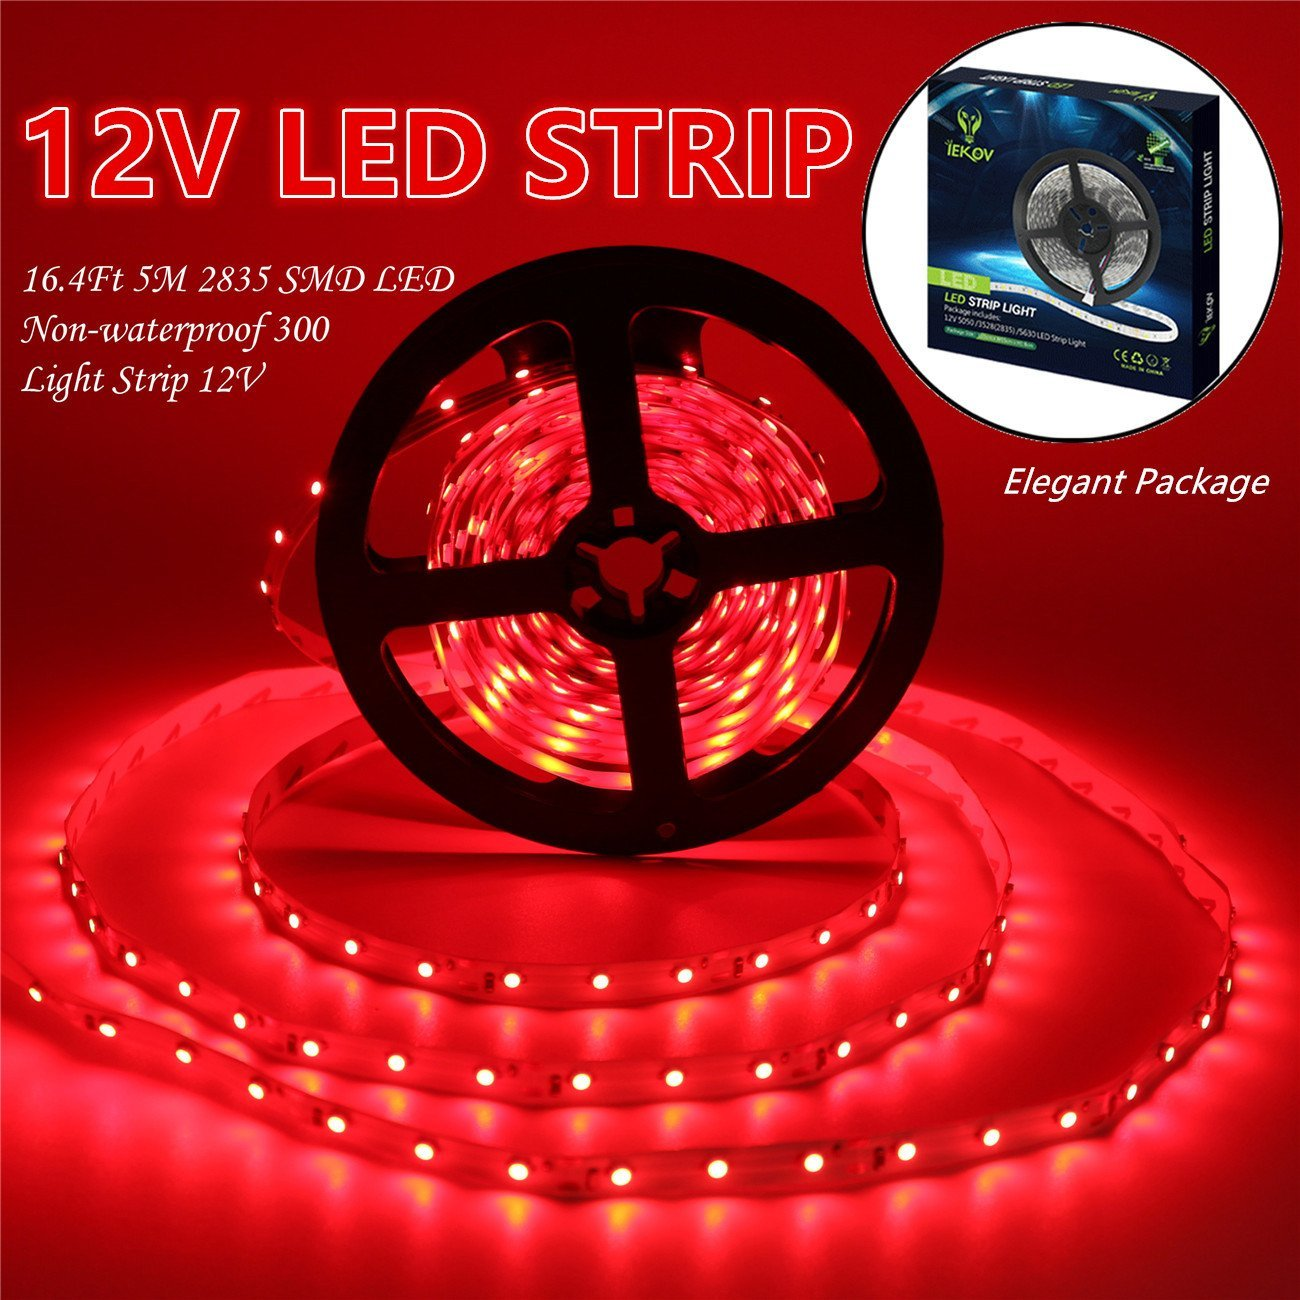 Led Strip Lights, IEKOV™ 2835 SMD 300LEDs Non-Waterproof Flexible Xmas Decorative Lighting Strips, LED Tape, 5M 16.4Ft DC12V, 2 times brightness than SMD 3528 LED Light Strip (Red)